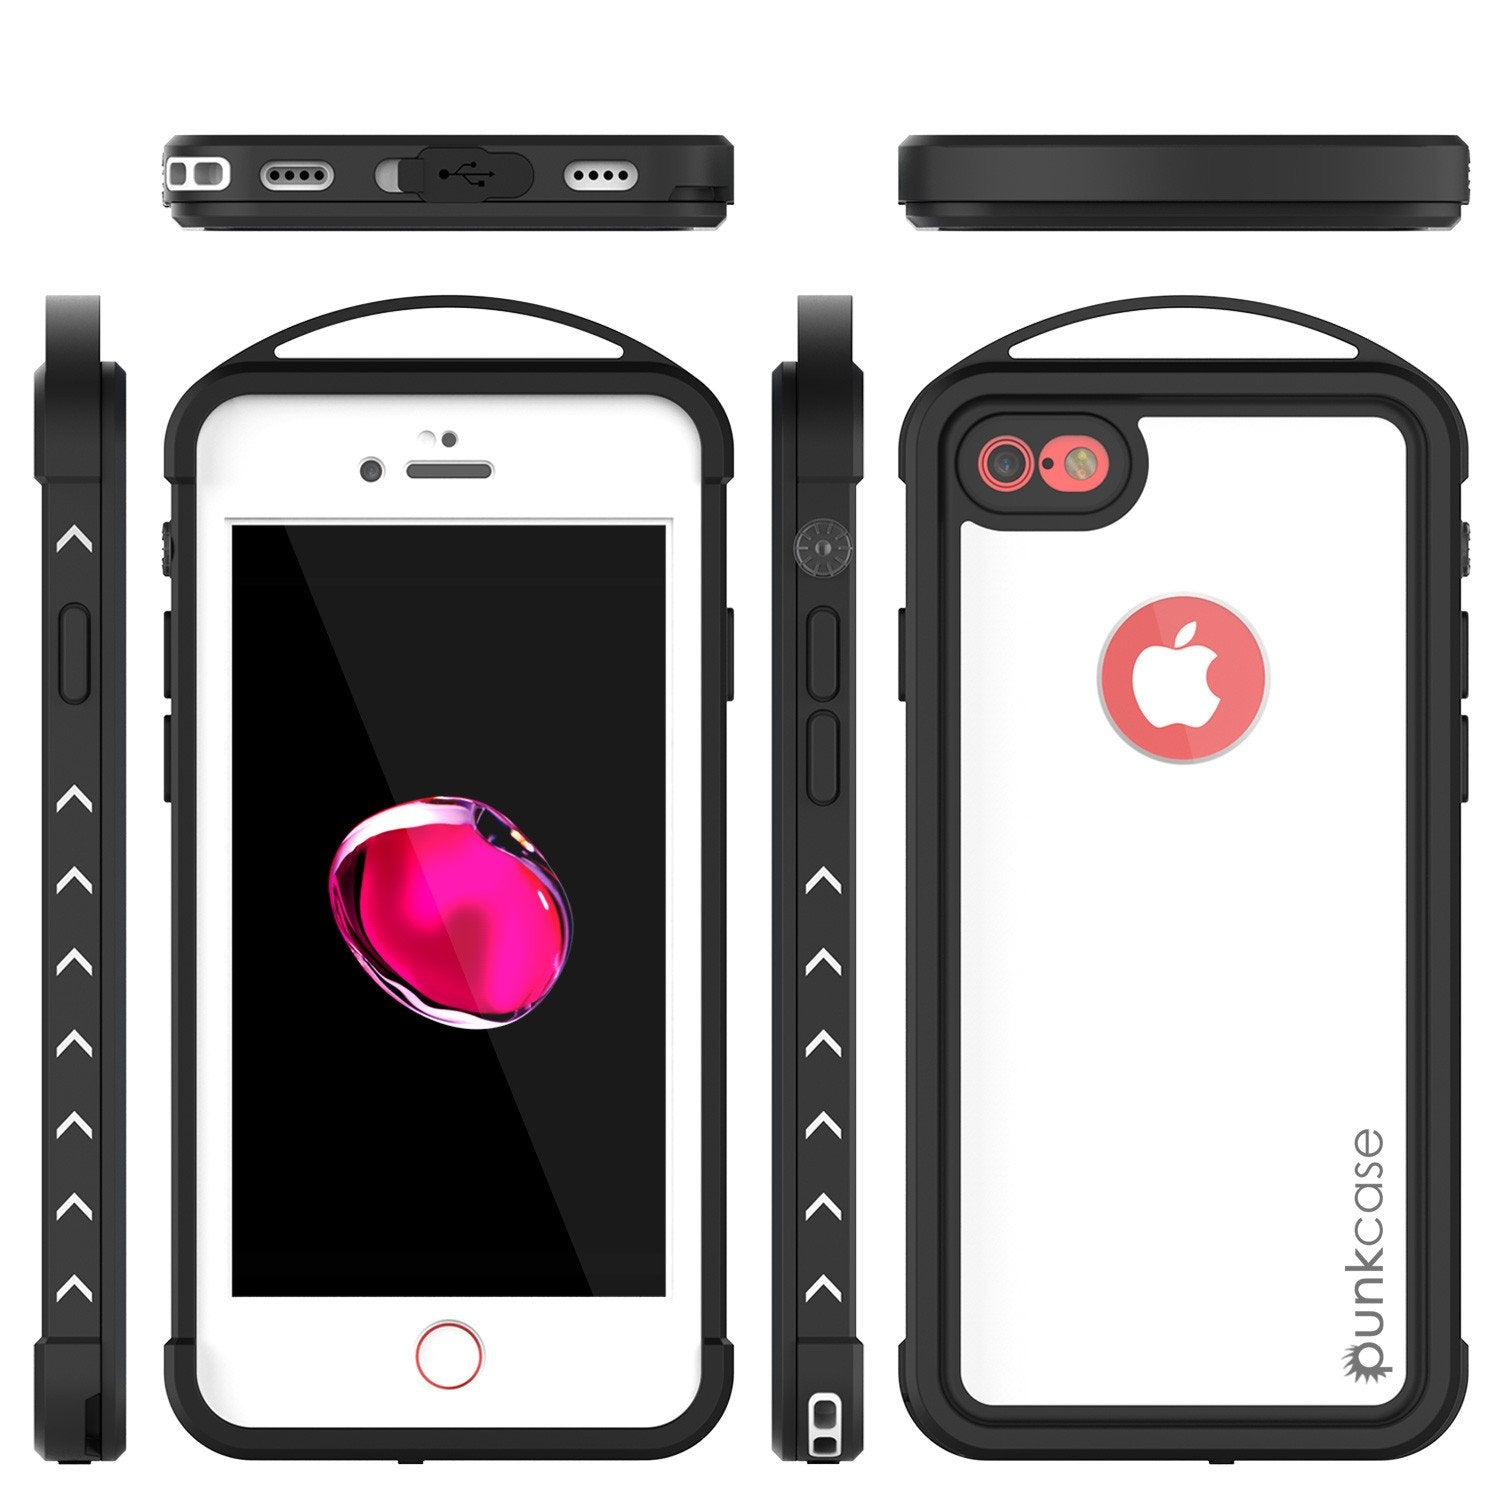 iPhone 7 Waterproof Case, Punkcase ALPINE Series, White | Heavy Duty Armor Cover - PunkCase NZ